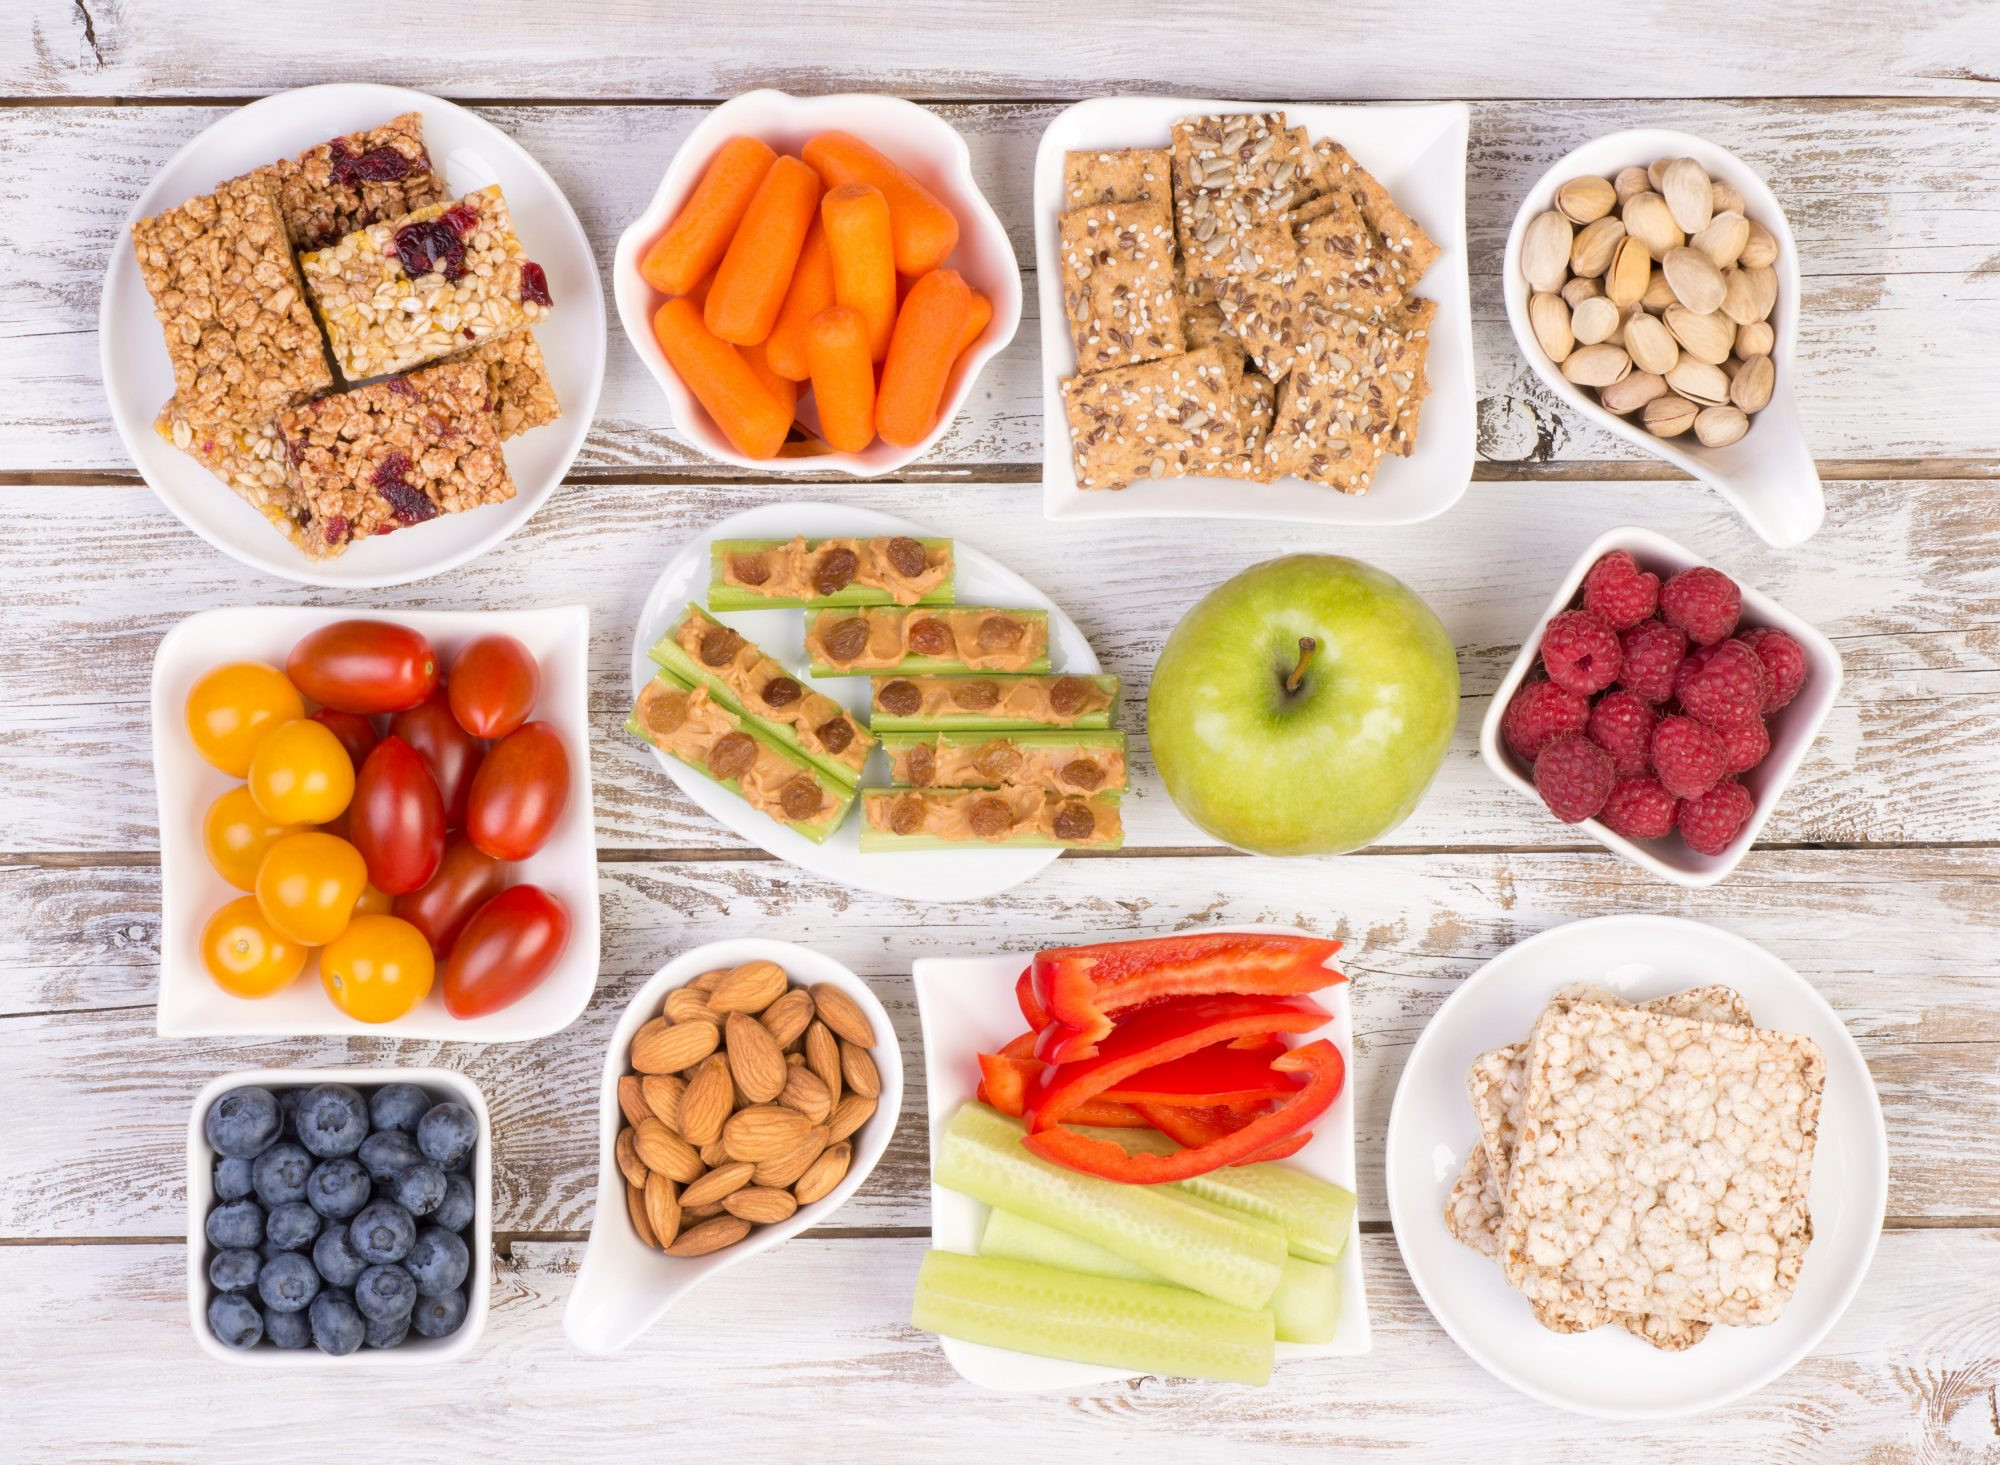 Easy Healthy Snacks For Kids  10 Tips to Healthy and Simple Snacks for Kids and Adults